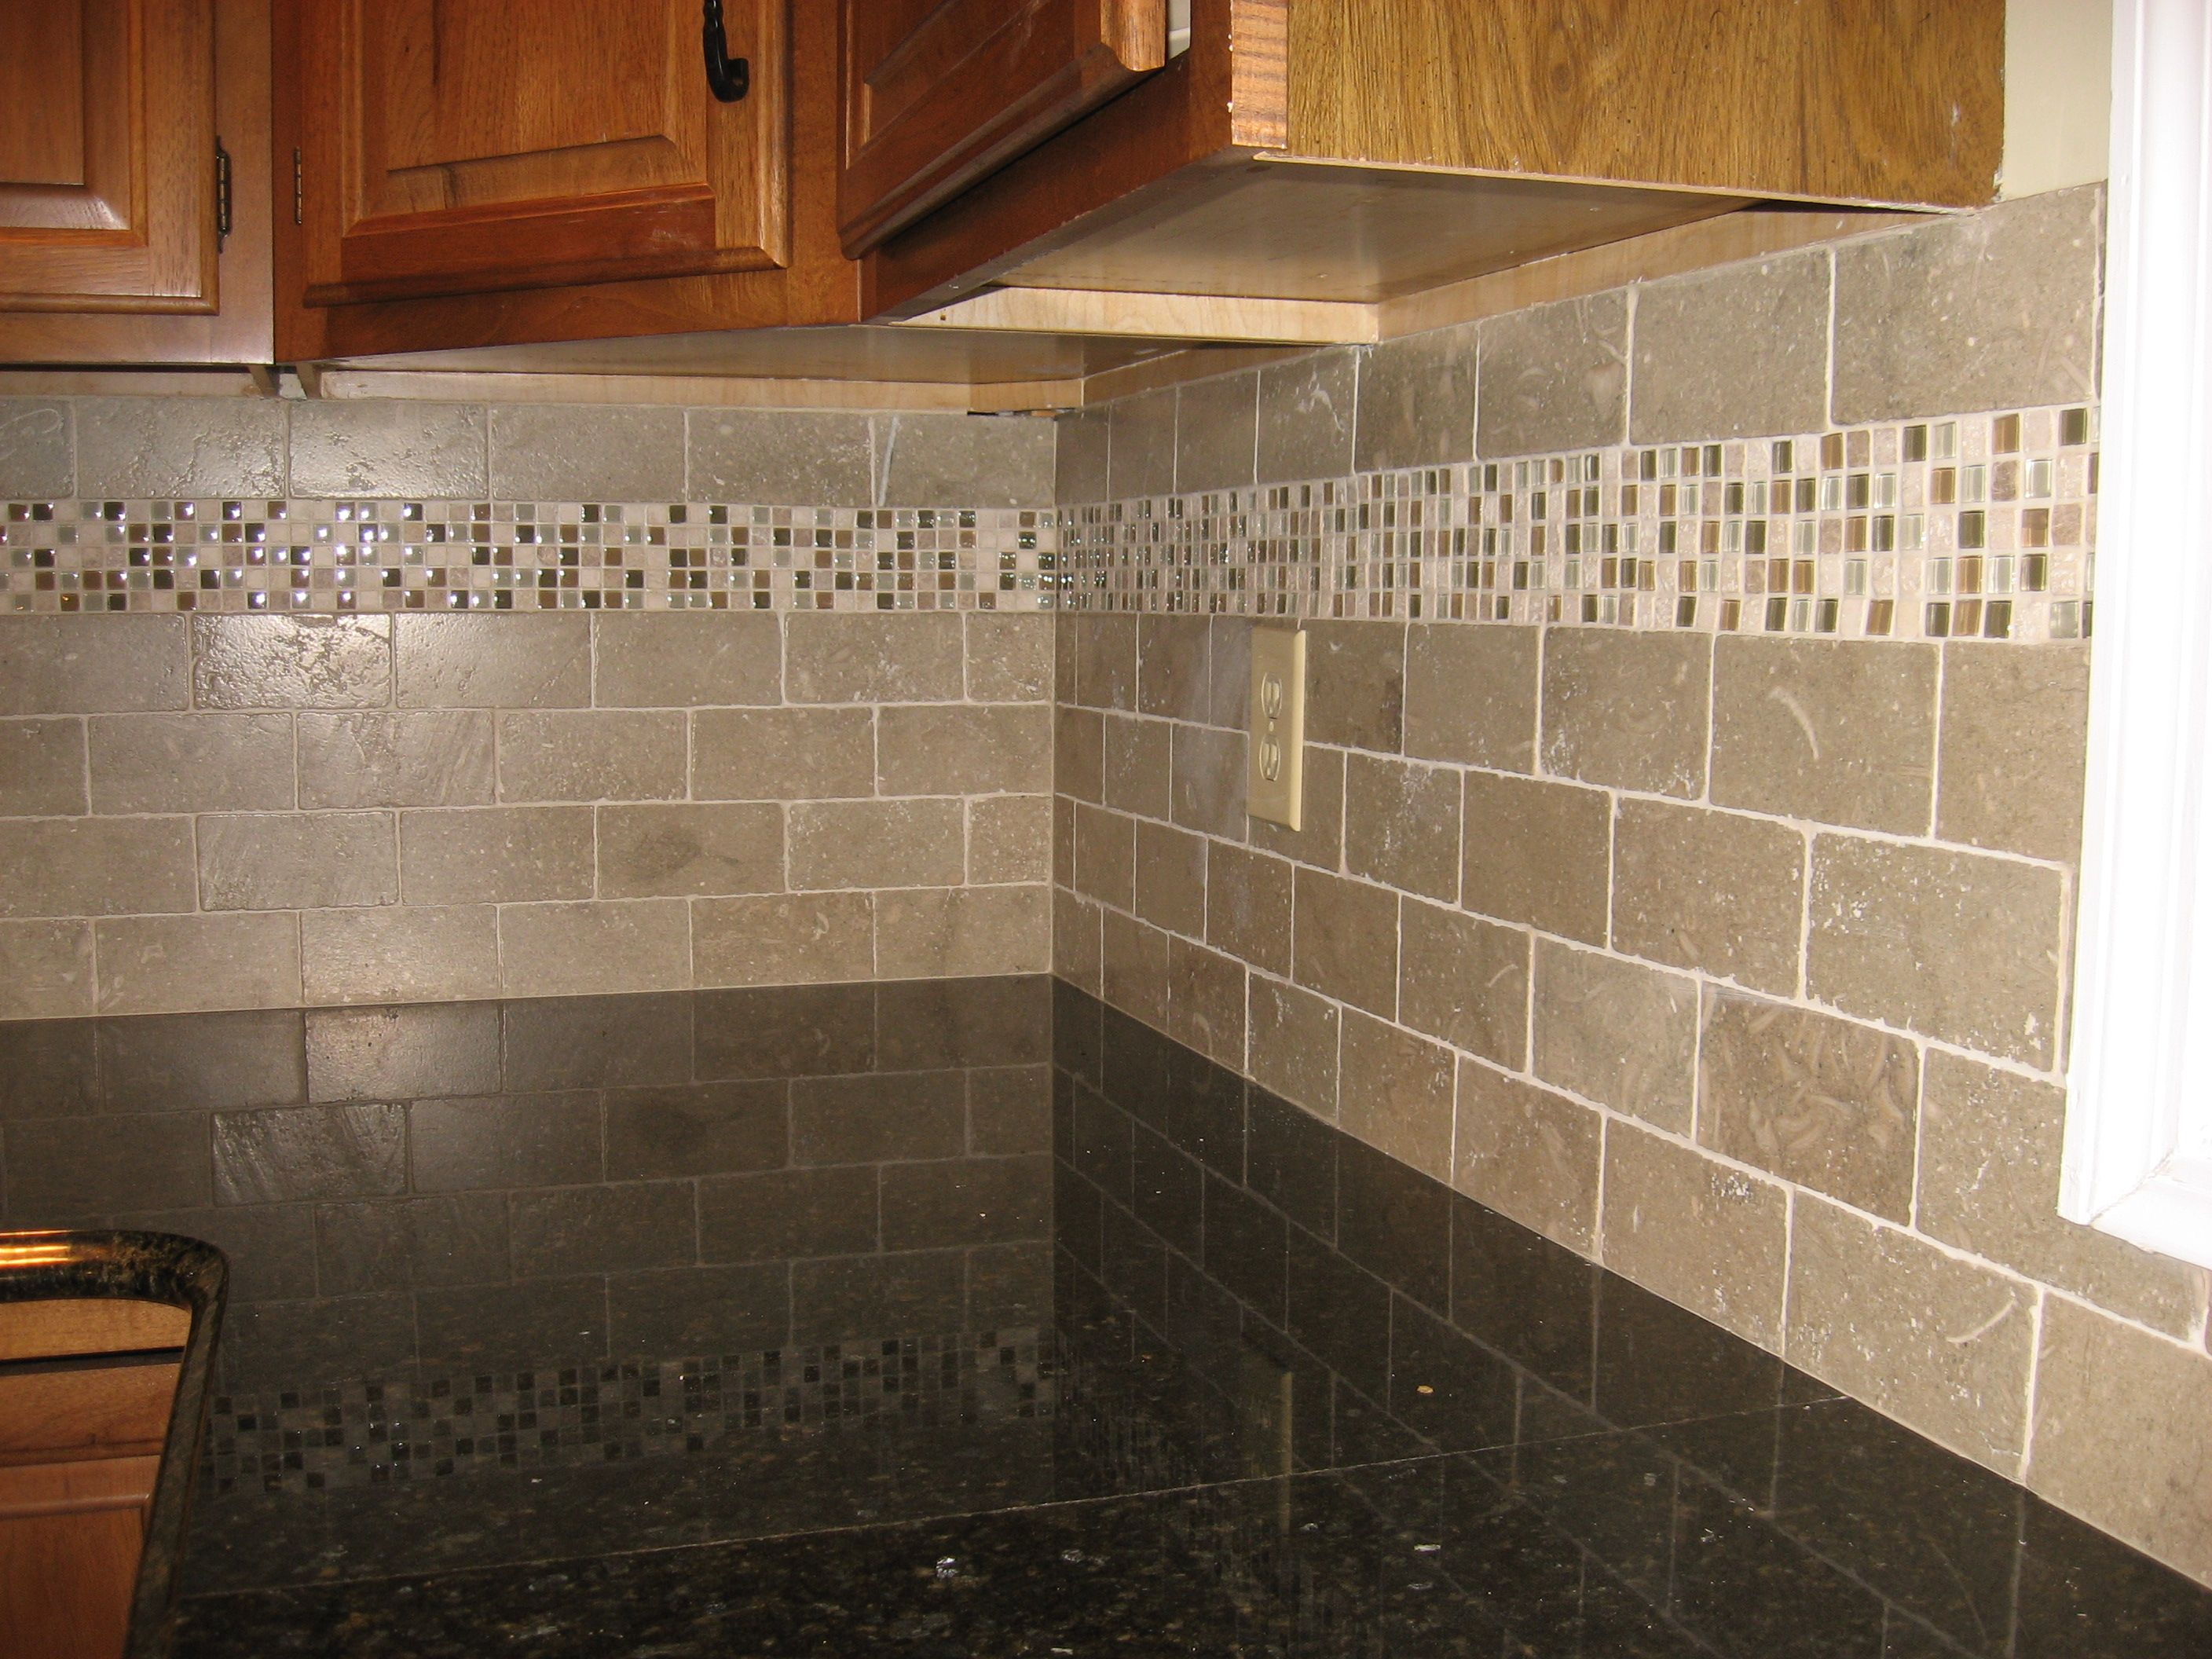 Uncategorized Backsplash Tile For Kitchens subway tiles with mosaic accents backsplash tumbled new kitchen limestone tile and mixed accent